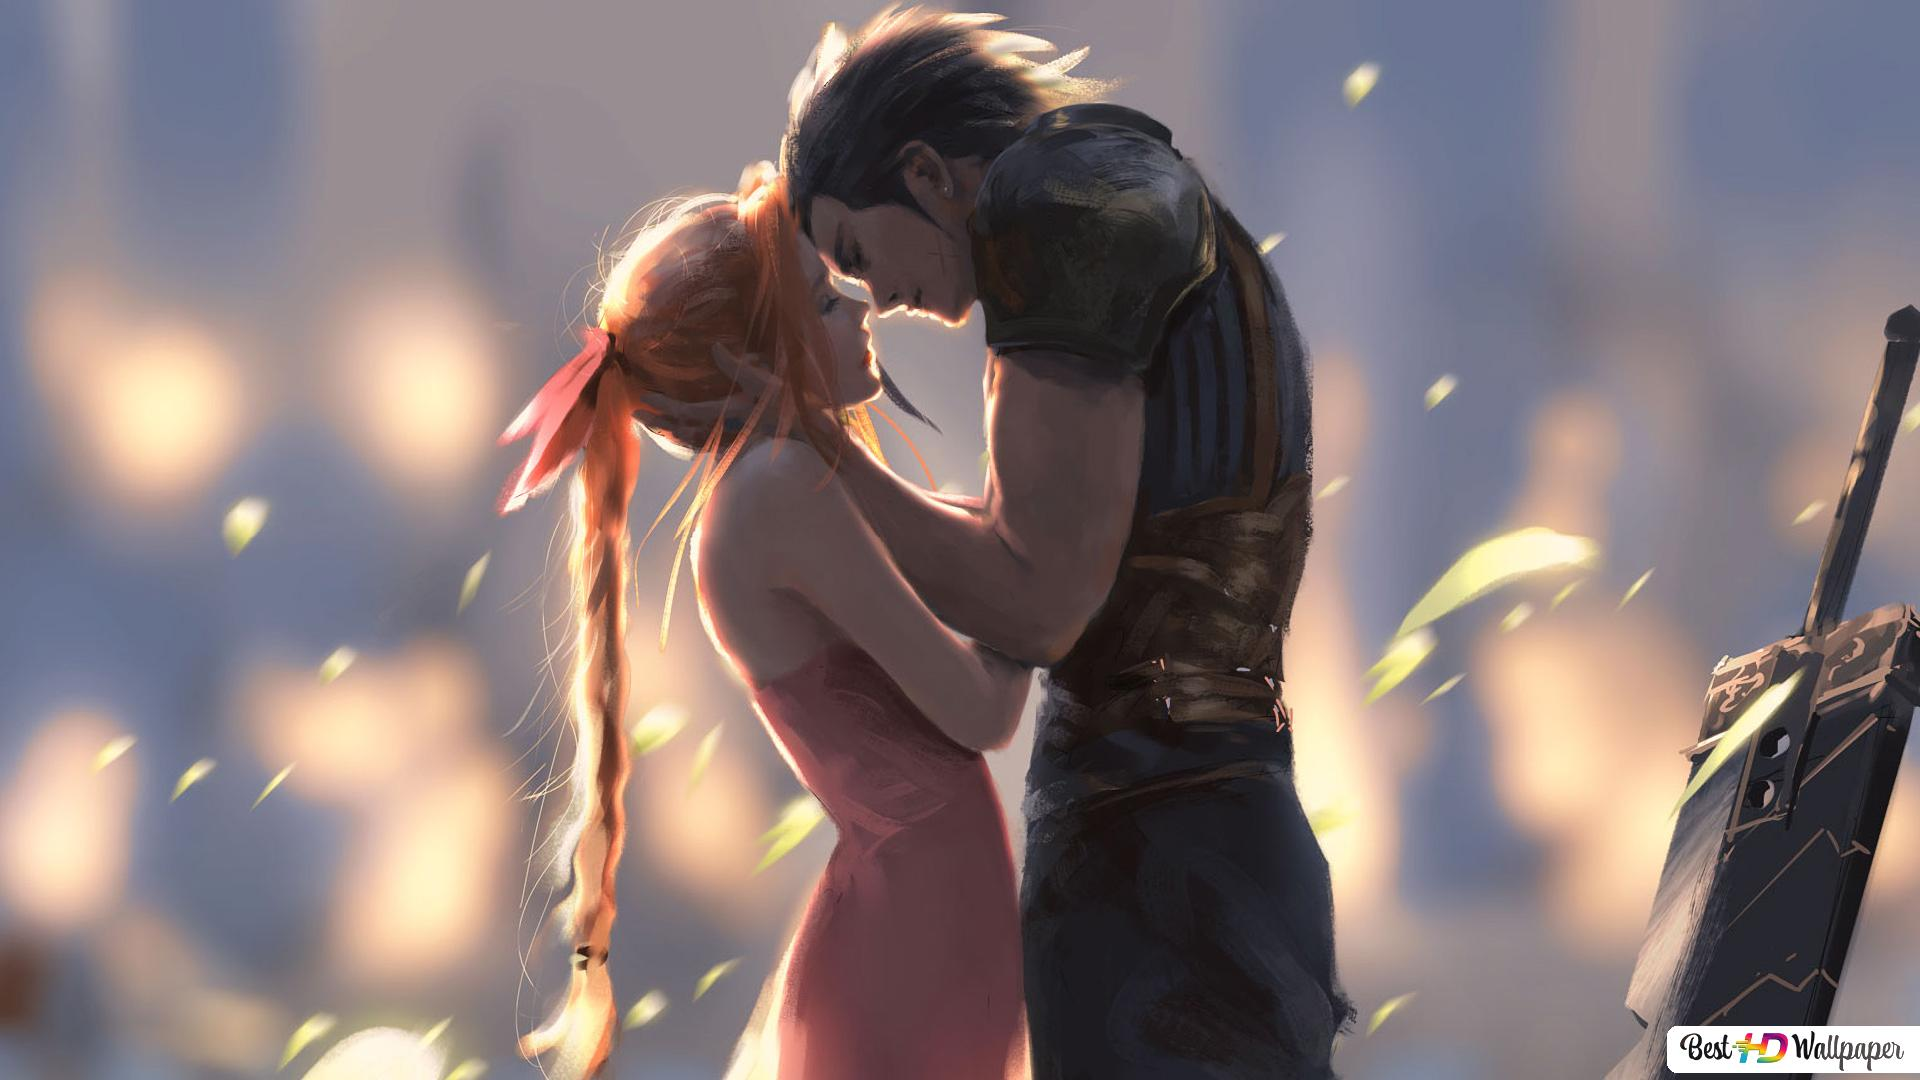 Final Fantasy Vii Zack And Aerith Hd Wallpaper Download